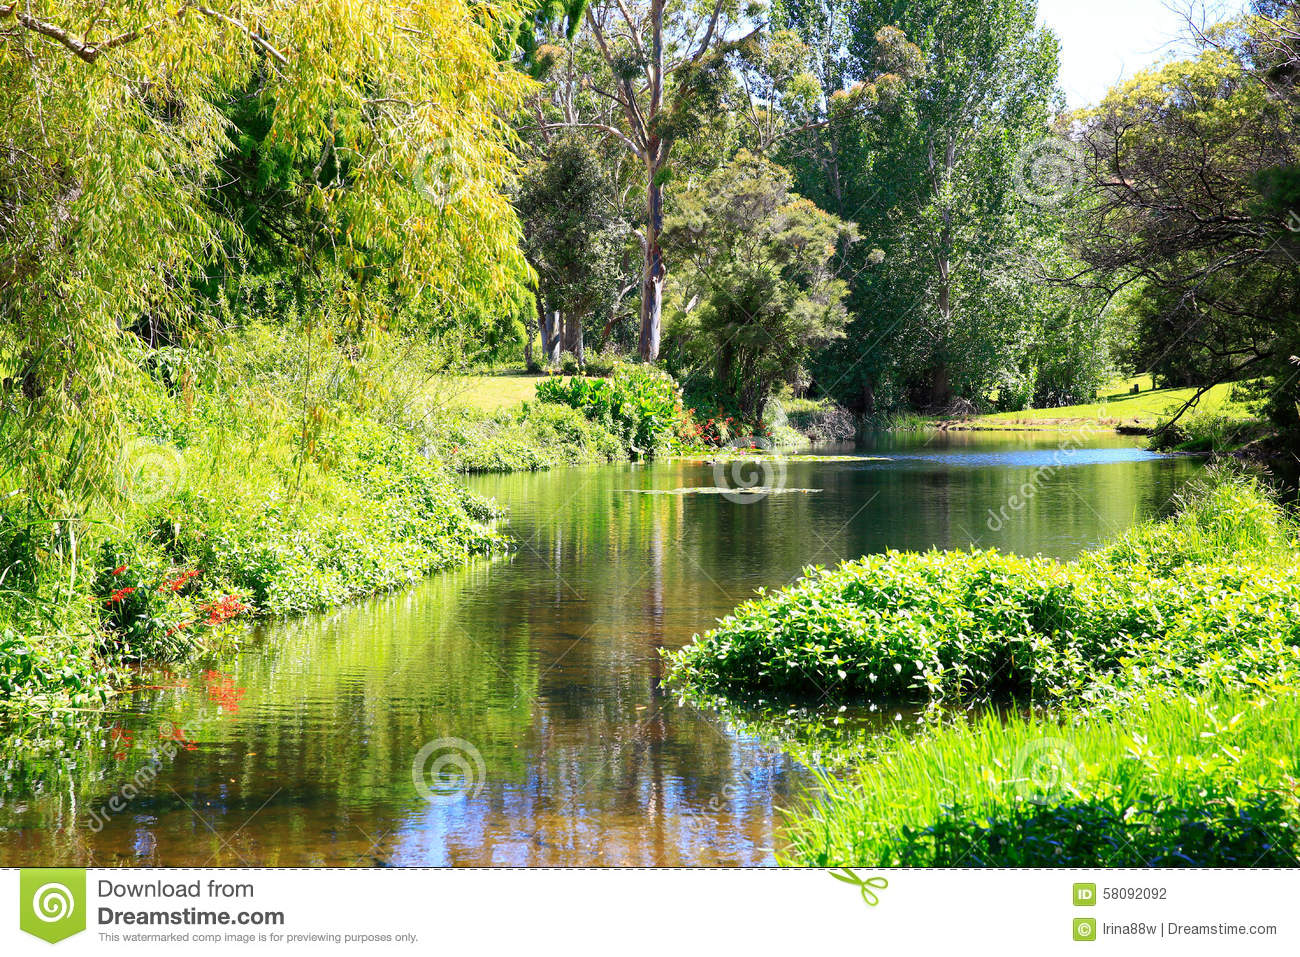 Amazing Sunny Scenery With Water And Greenery Stock Photo